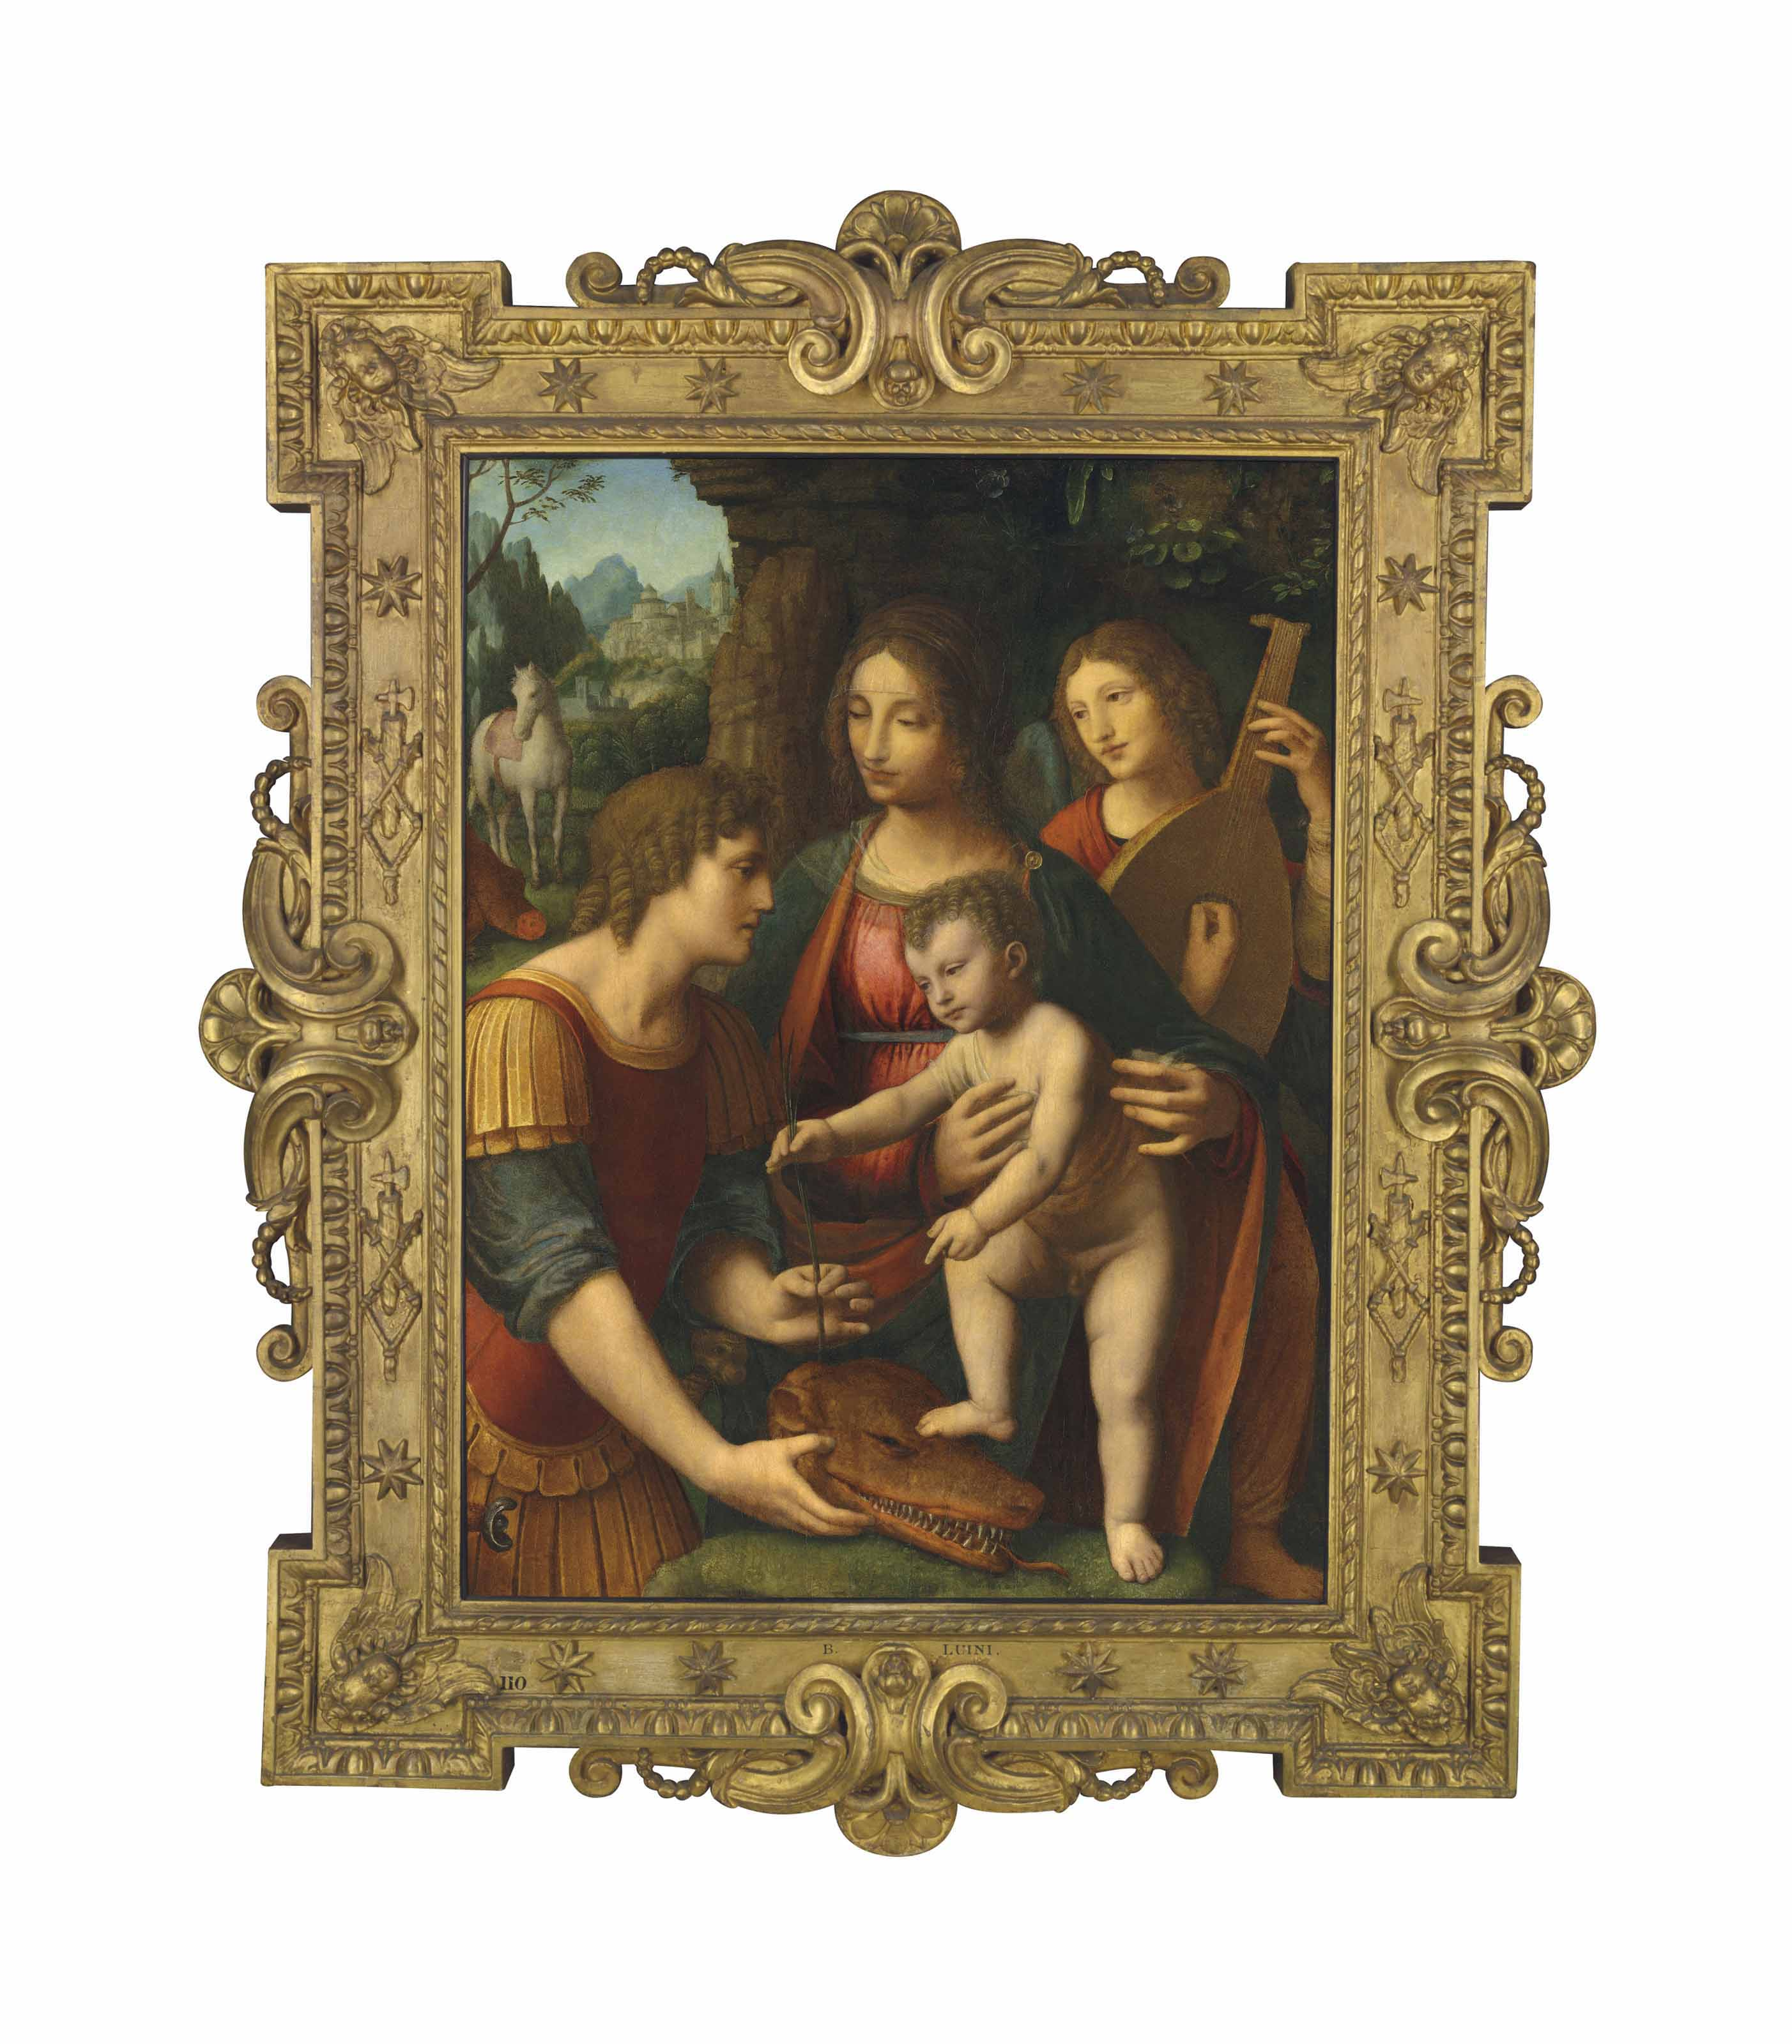 The Madonna and Child with Saint George and an angel